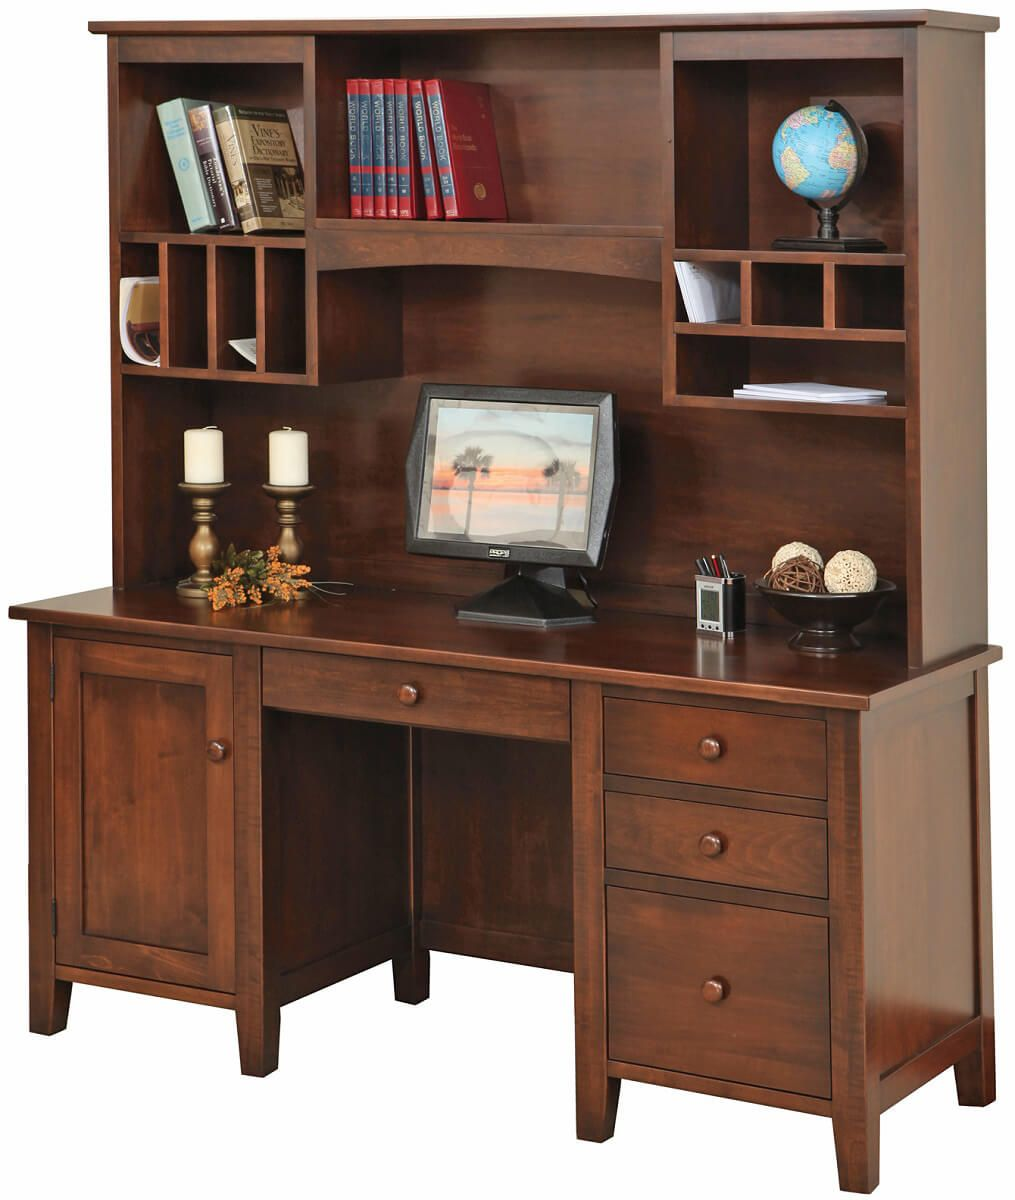 Rochester Brown Maple Computer Desk   Countryside Amish Furniture